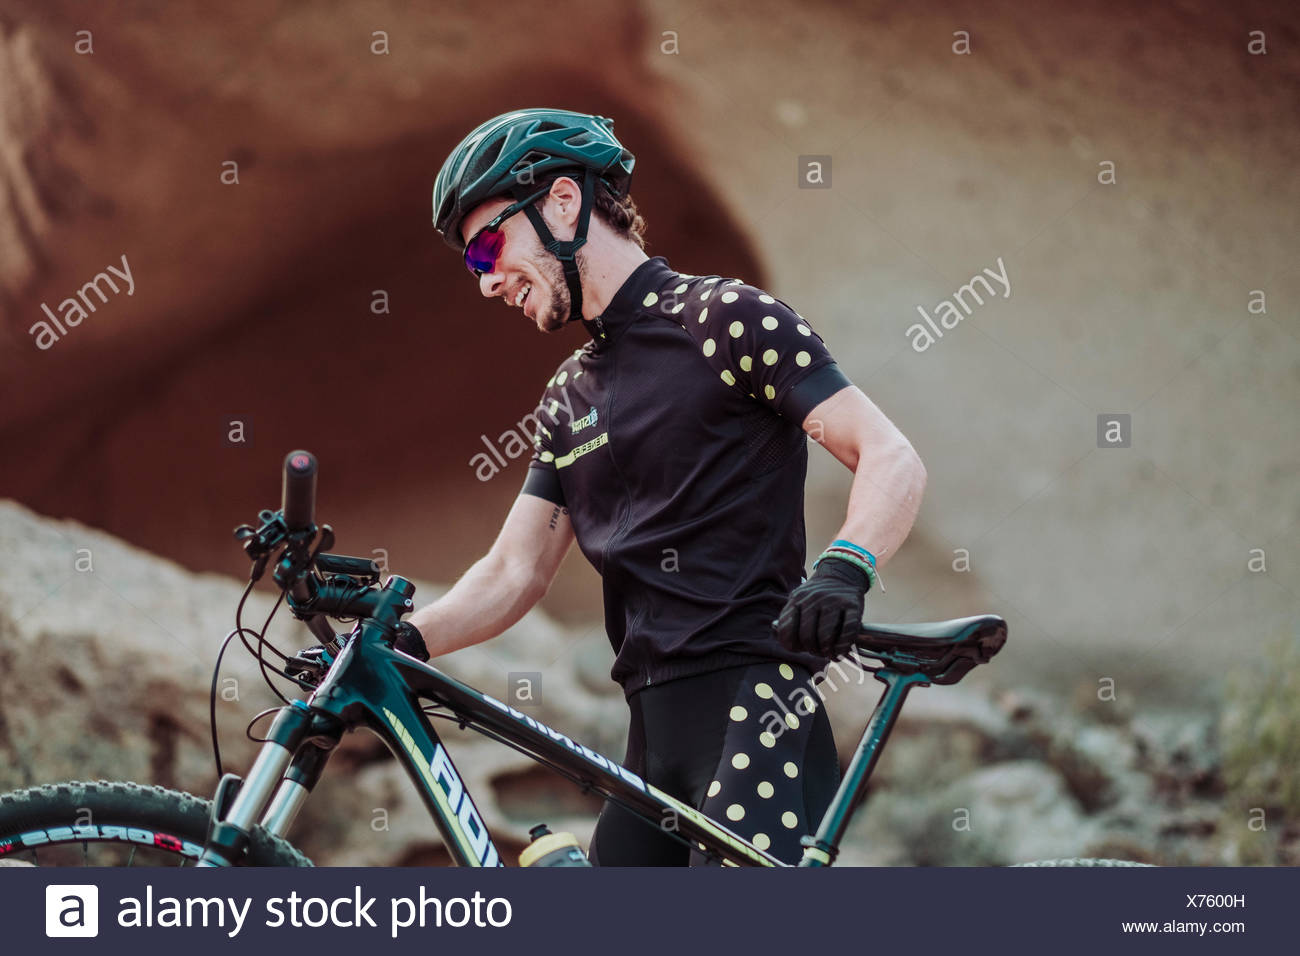 Man walking in desert with his mountain bike, Tenerife, Canary Islands, Spain - Stock Image